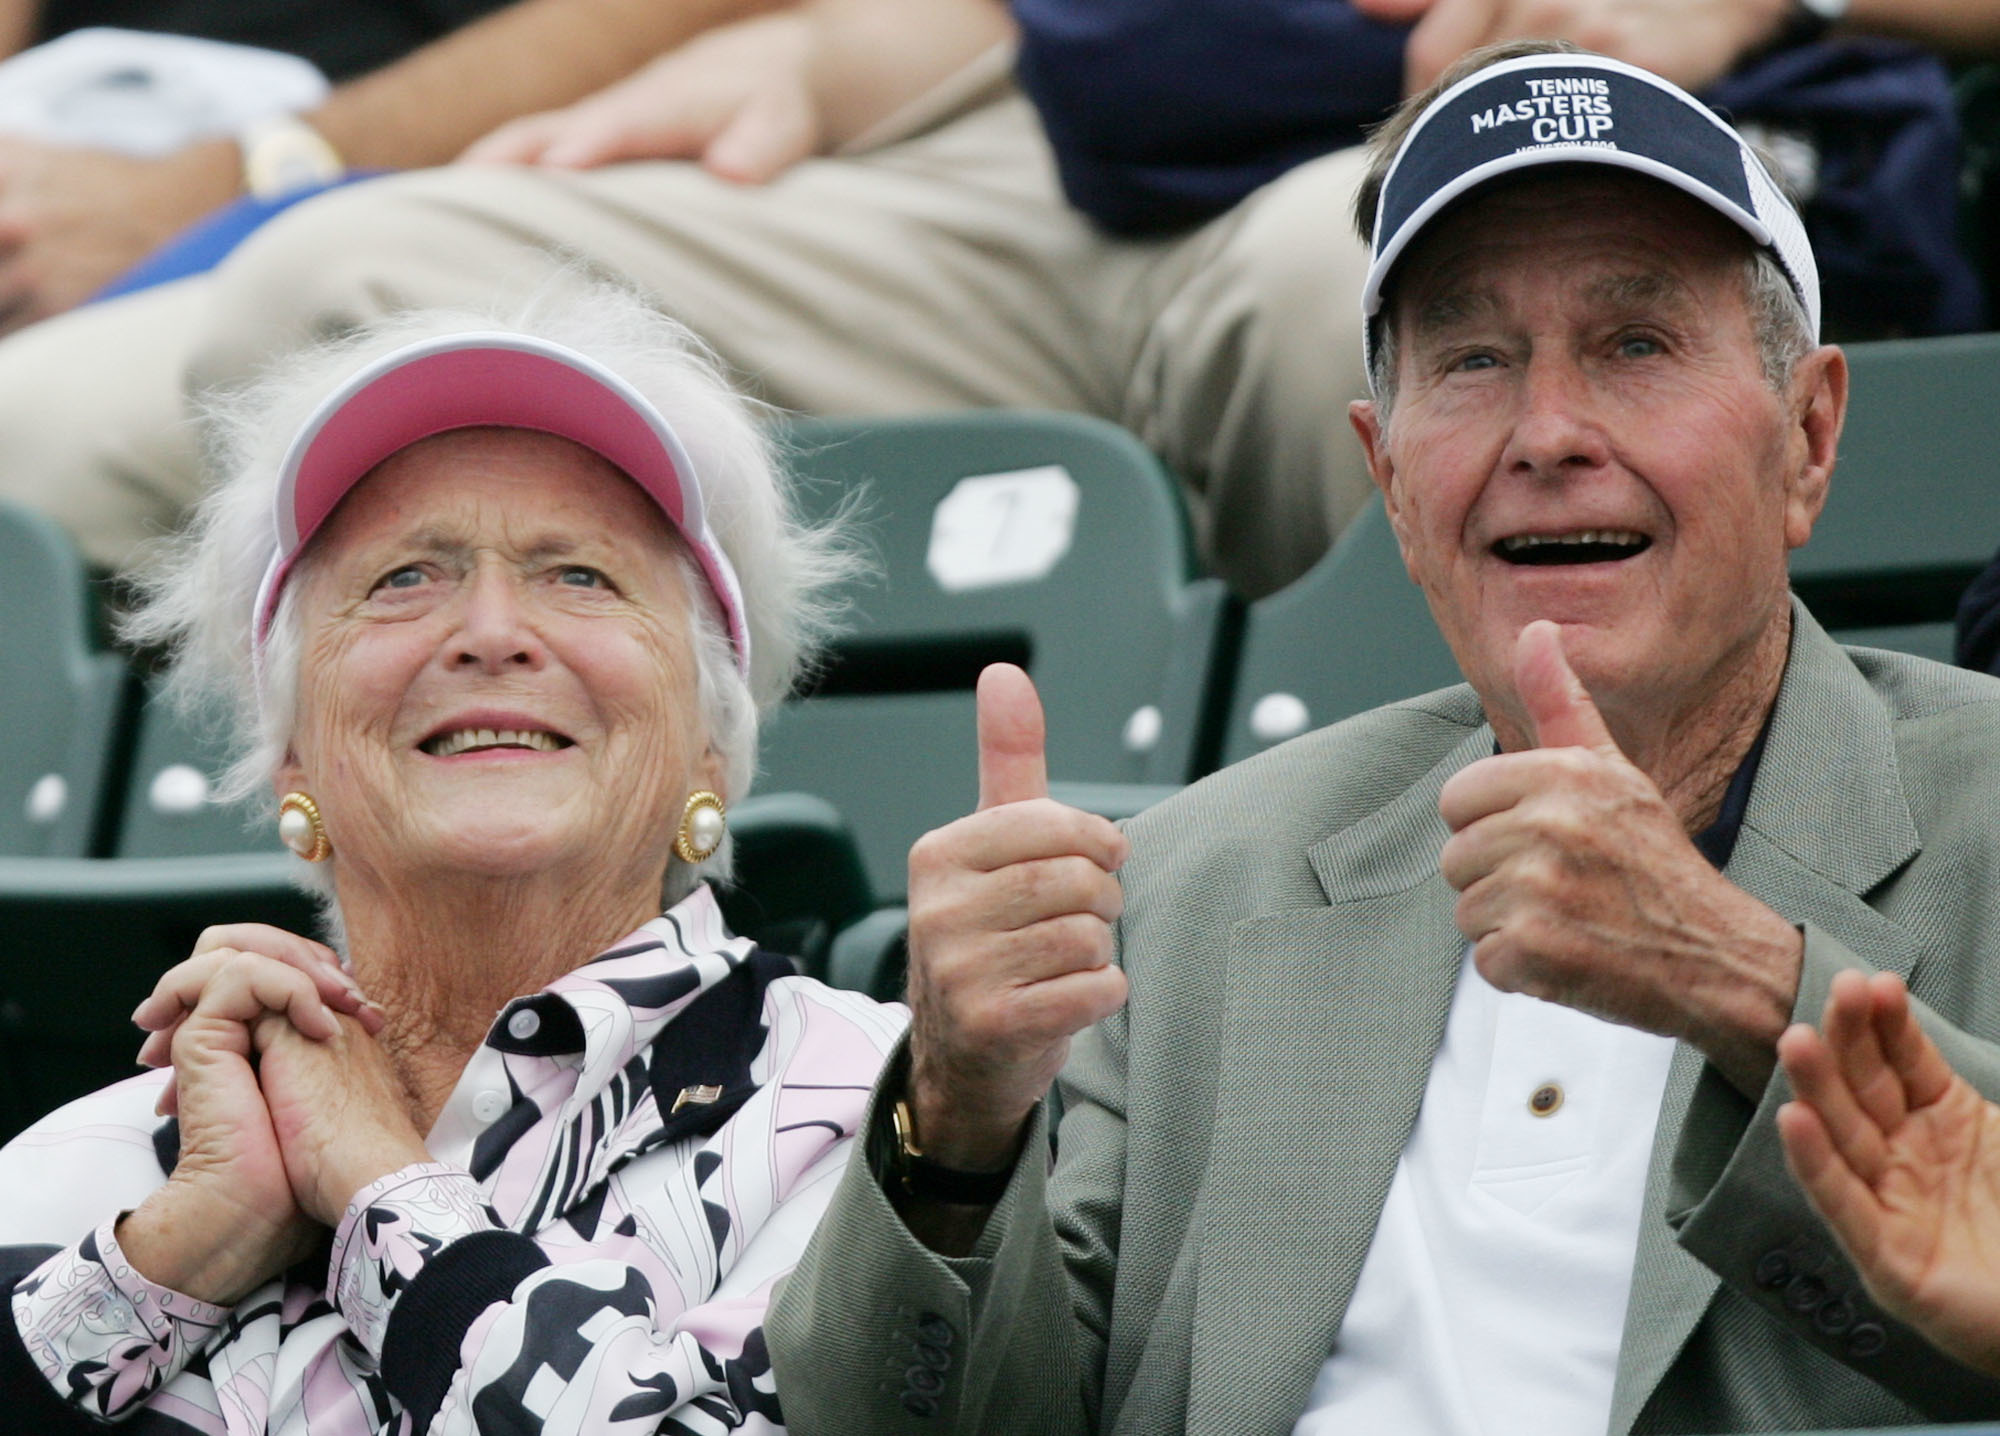 "FILE - In this Nov. 16, 2004 file photo, former President George Bush, right, gives a thumbs-up while he and his wife, Barbara, left, attend the Tennis Masters Cup tournament in Houston. With her husband still at her side, Barbara Bush has decided to decline further medical treatment for health problems and focus instead on ""comfort care"" at their home in Houston. Family spokesman Jim McGrath disclosed Barbara Bush's decision Sunday, April 15, 2018. (AP Photo/David J. Phillip, File)"